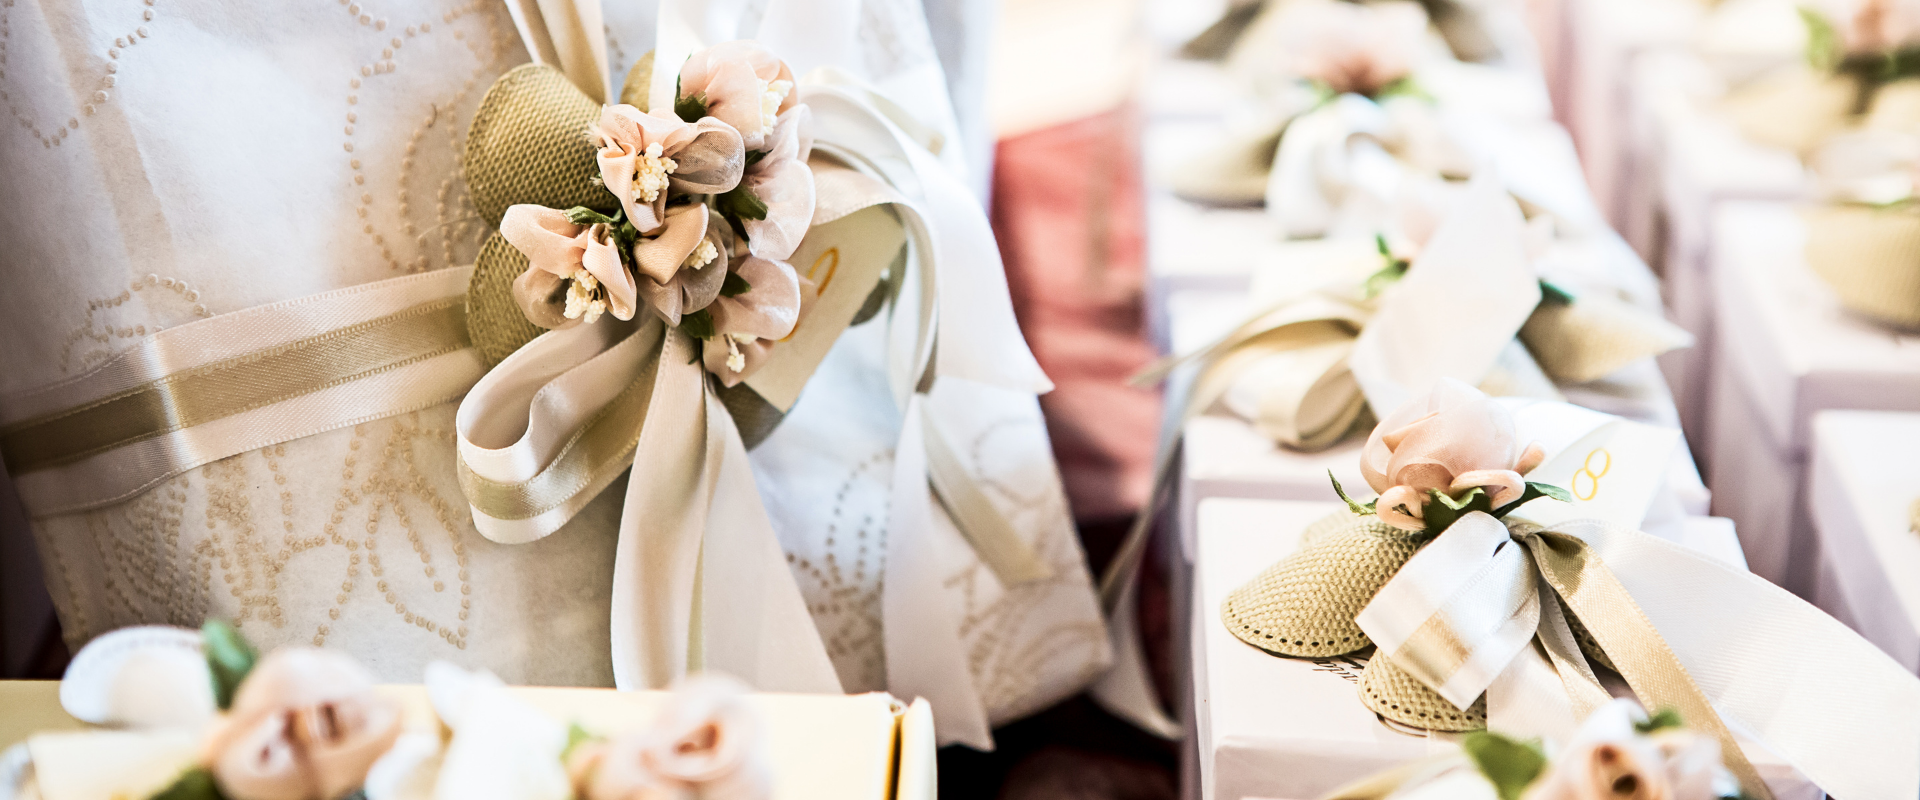 Should You Get Favors for Your Wedding?